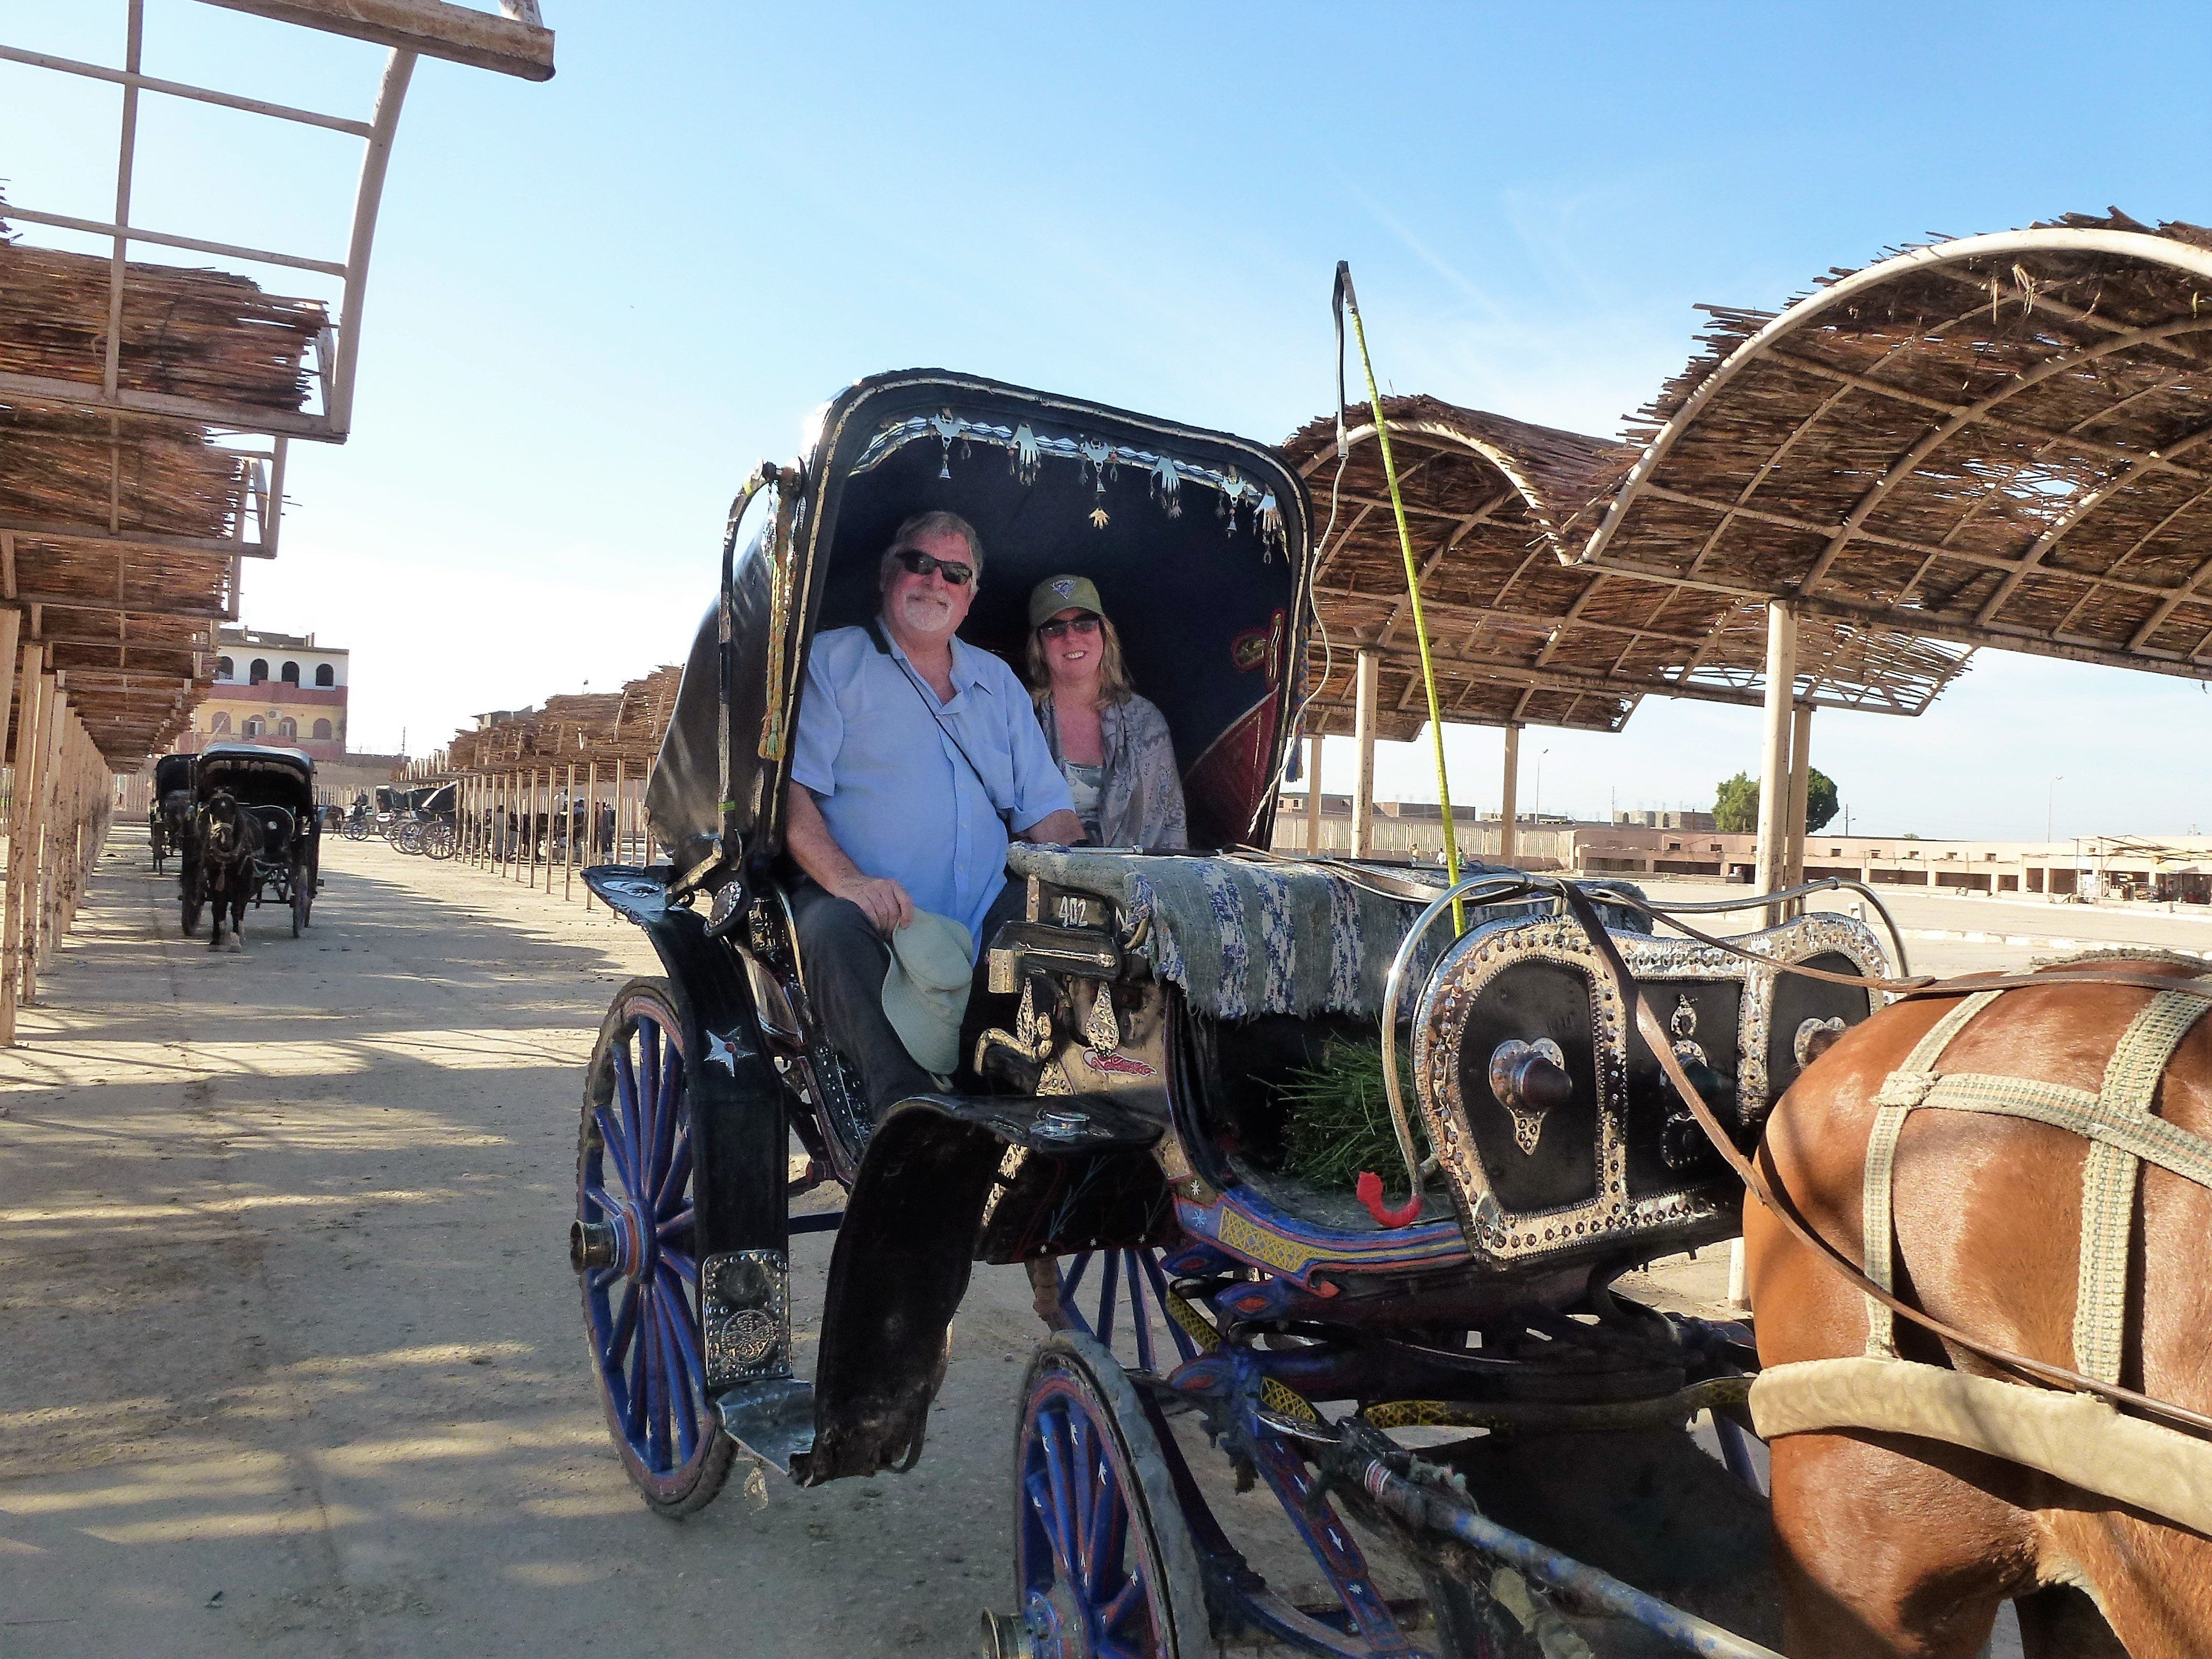 Tom Patterson and Steffanie Strathdee explore Luxor, Egypt, in November 2015. This photo was taken earlier on the d